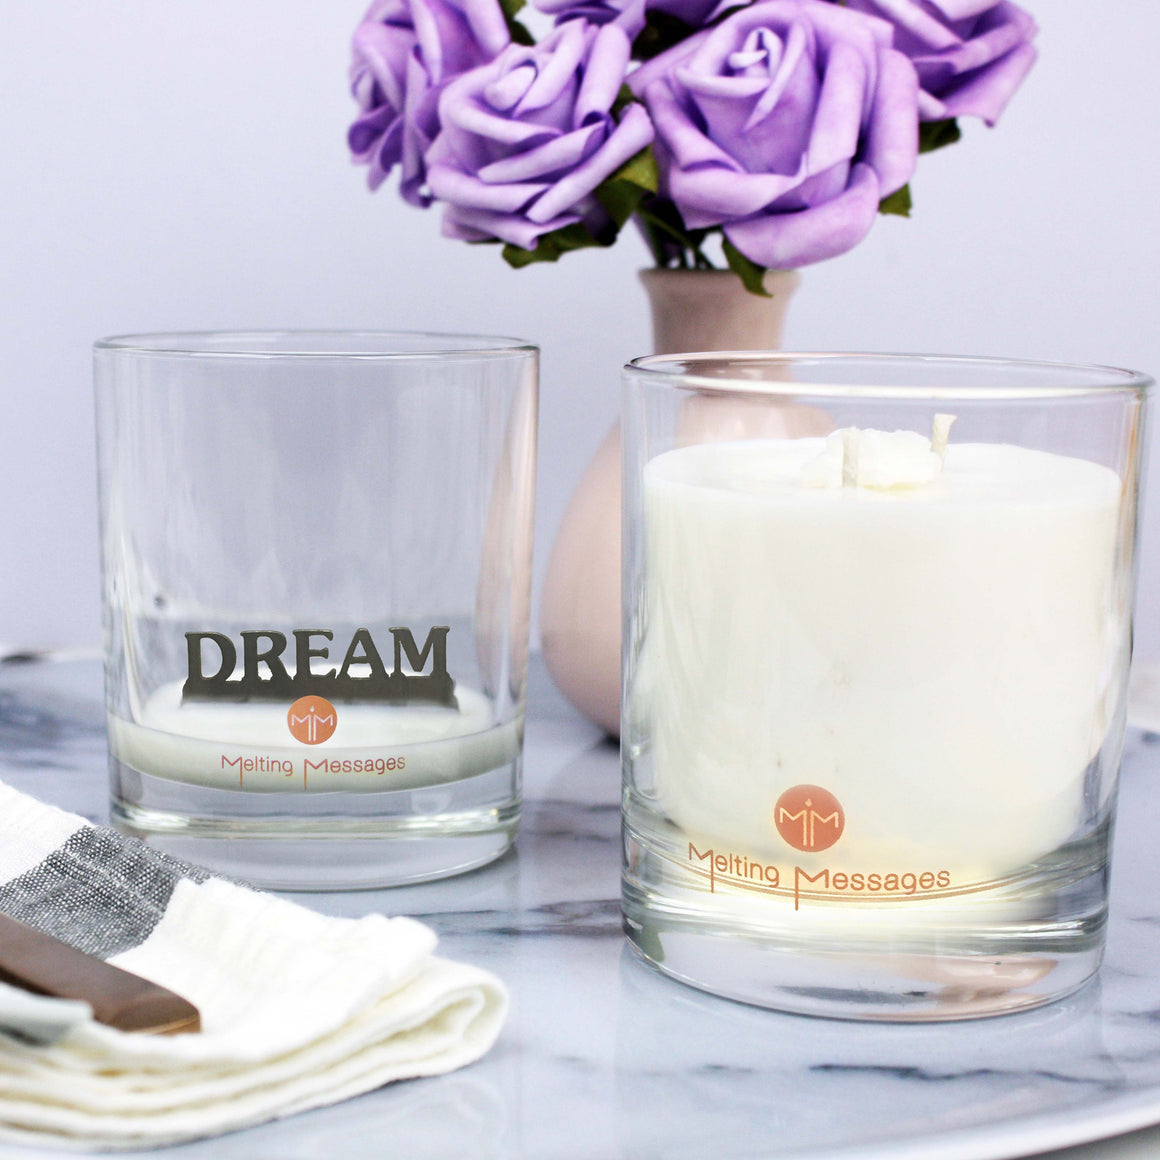 Melting Messages 'Dream' Silver Candle - The Love Trees